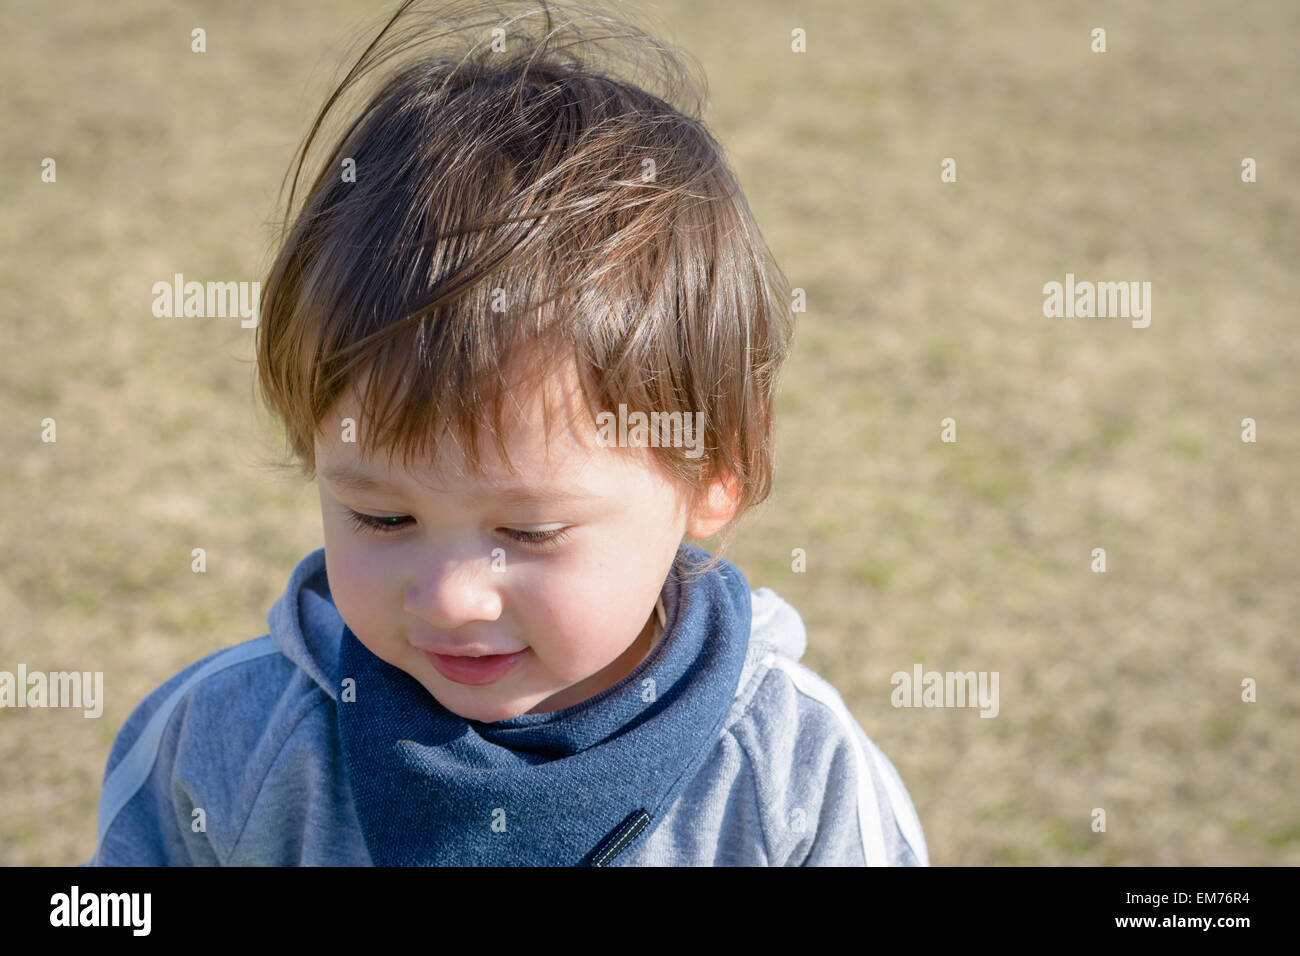 A 2 year old boy at a playground. - Stock Image